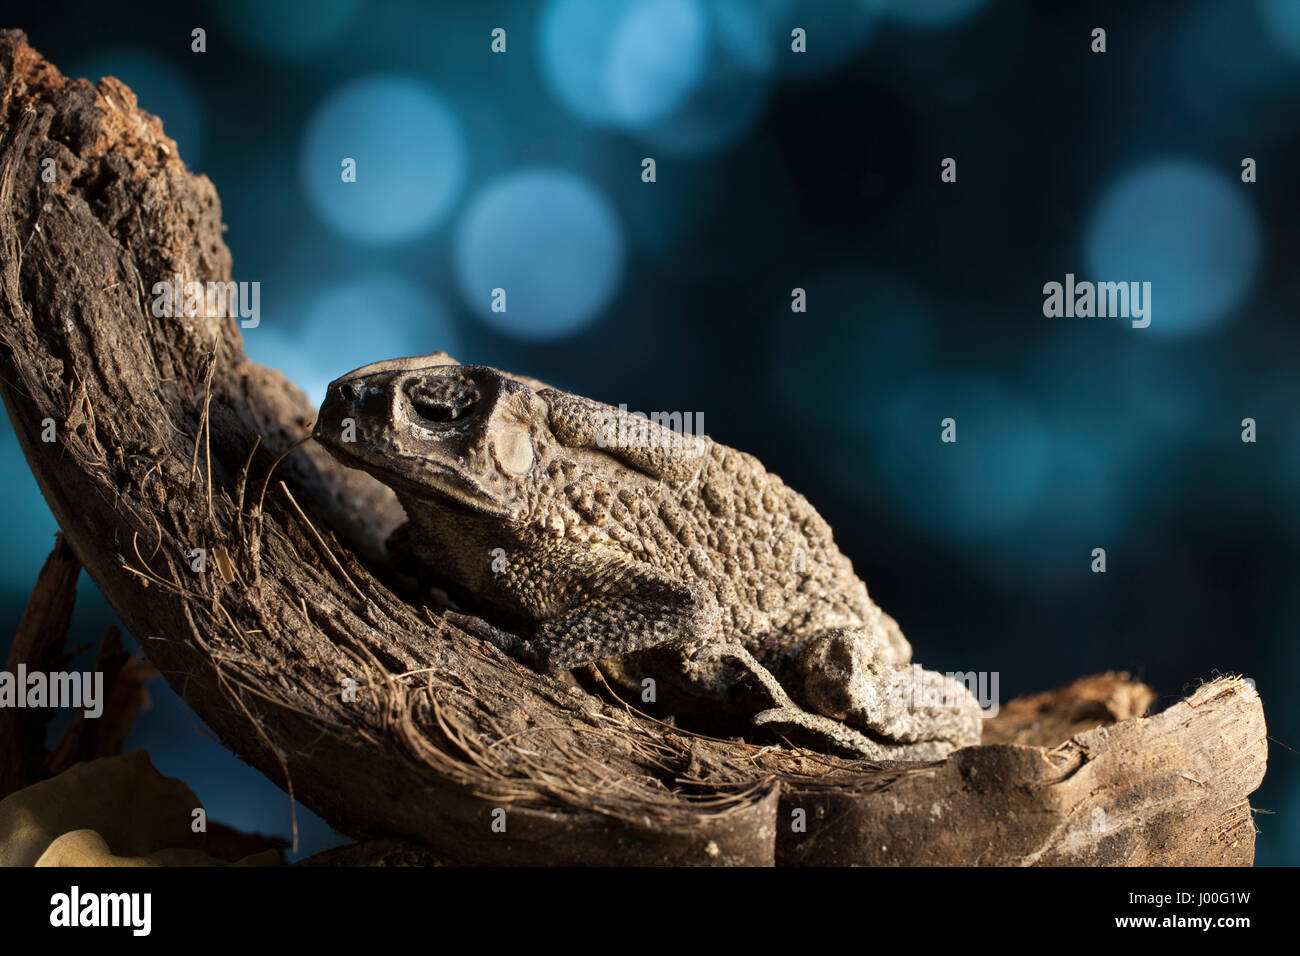 Portrait of a warty asian toad in an old coconut husk - Stock Image